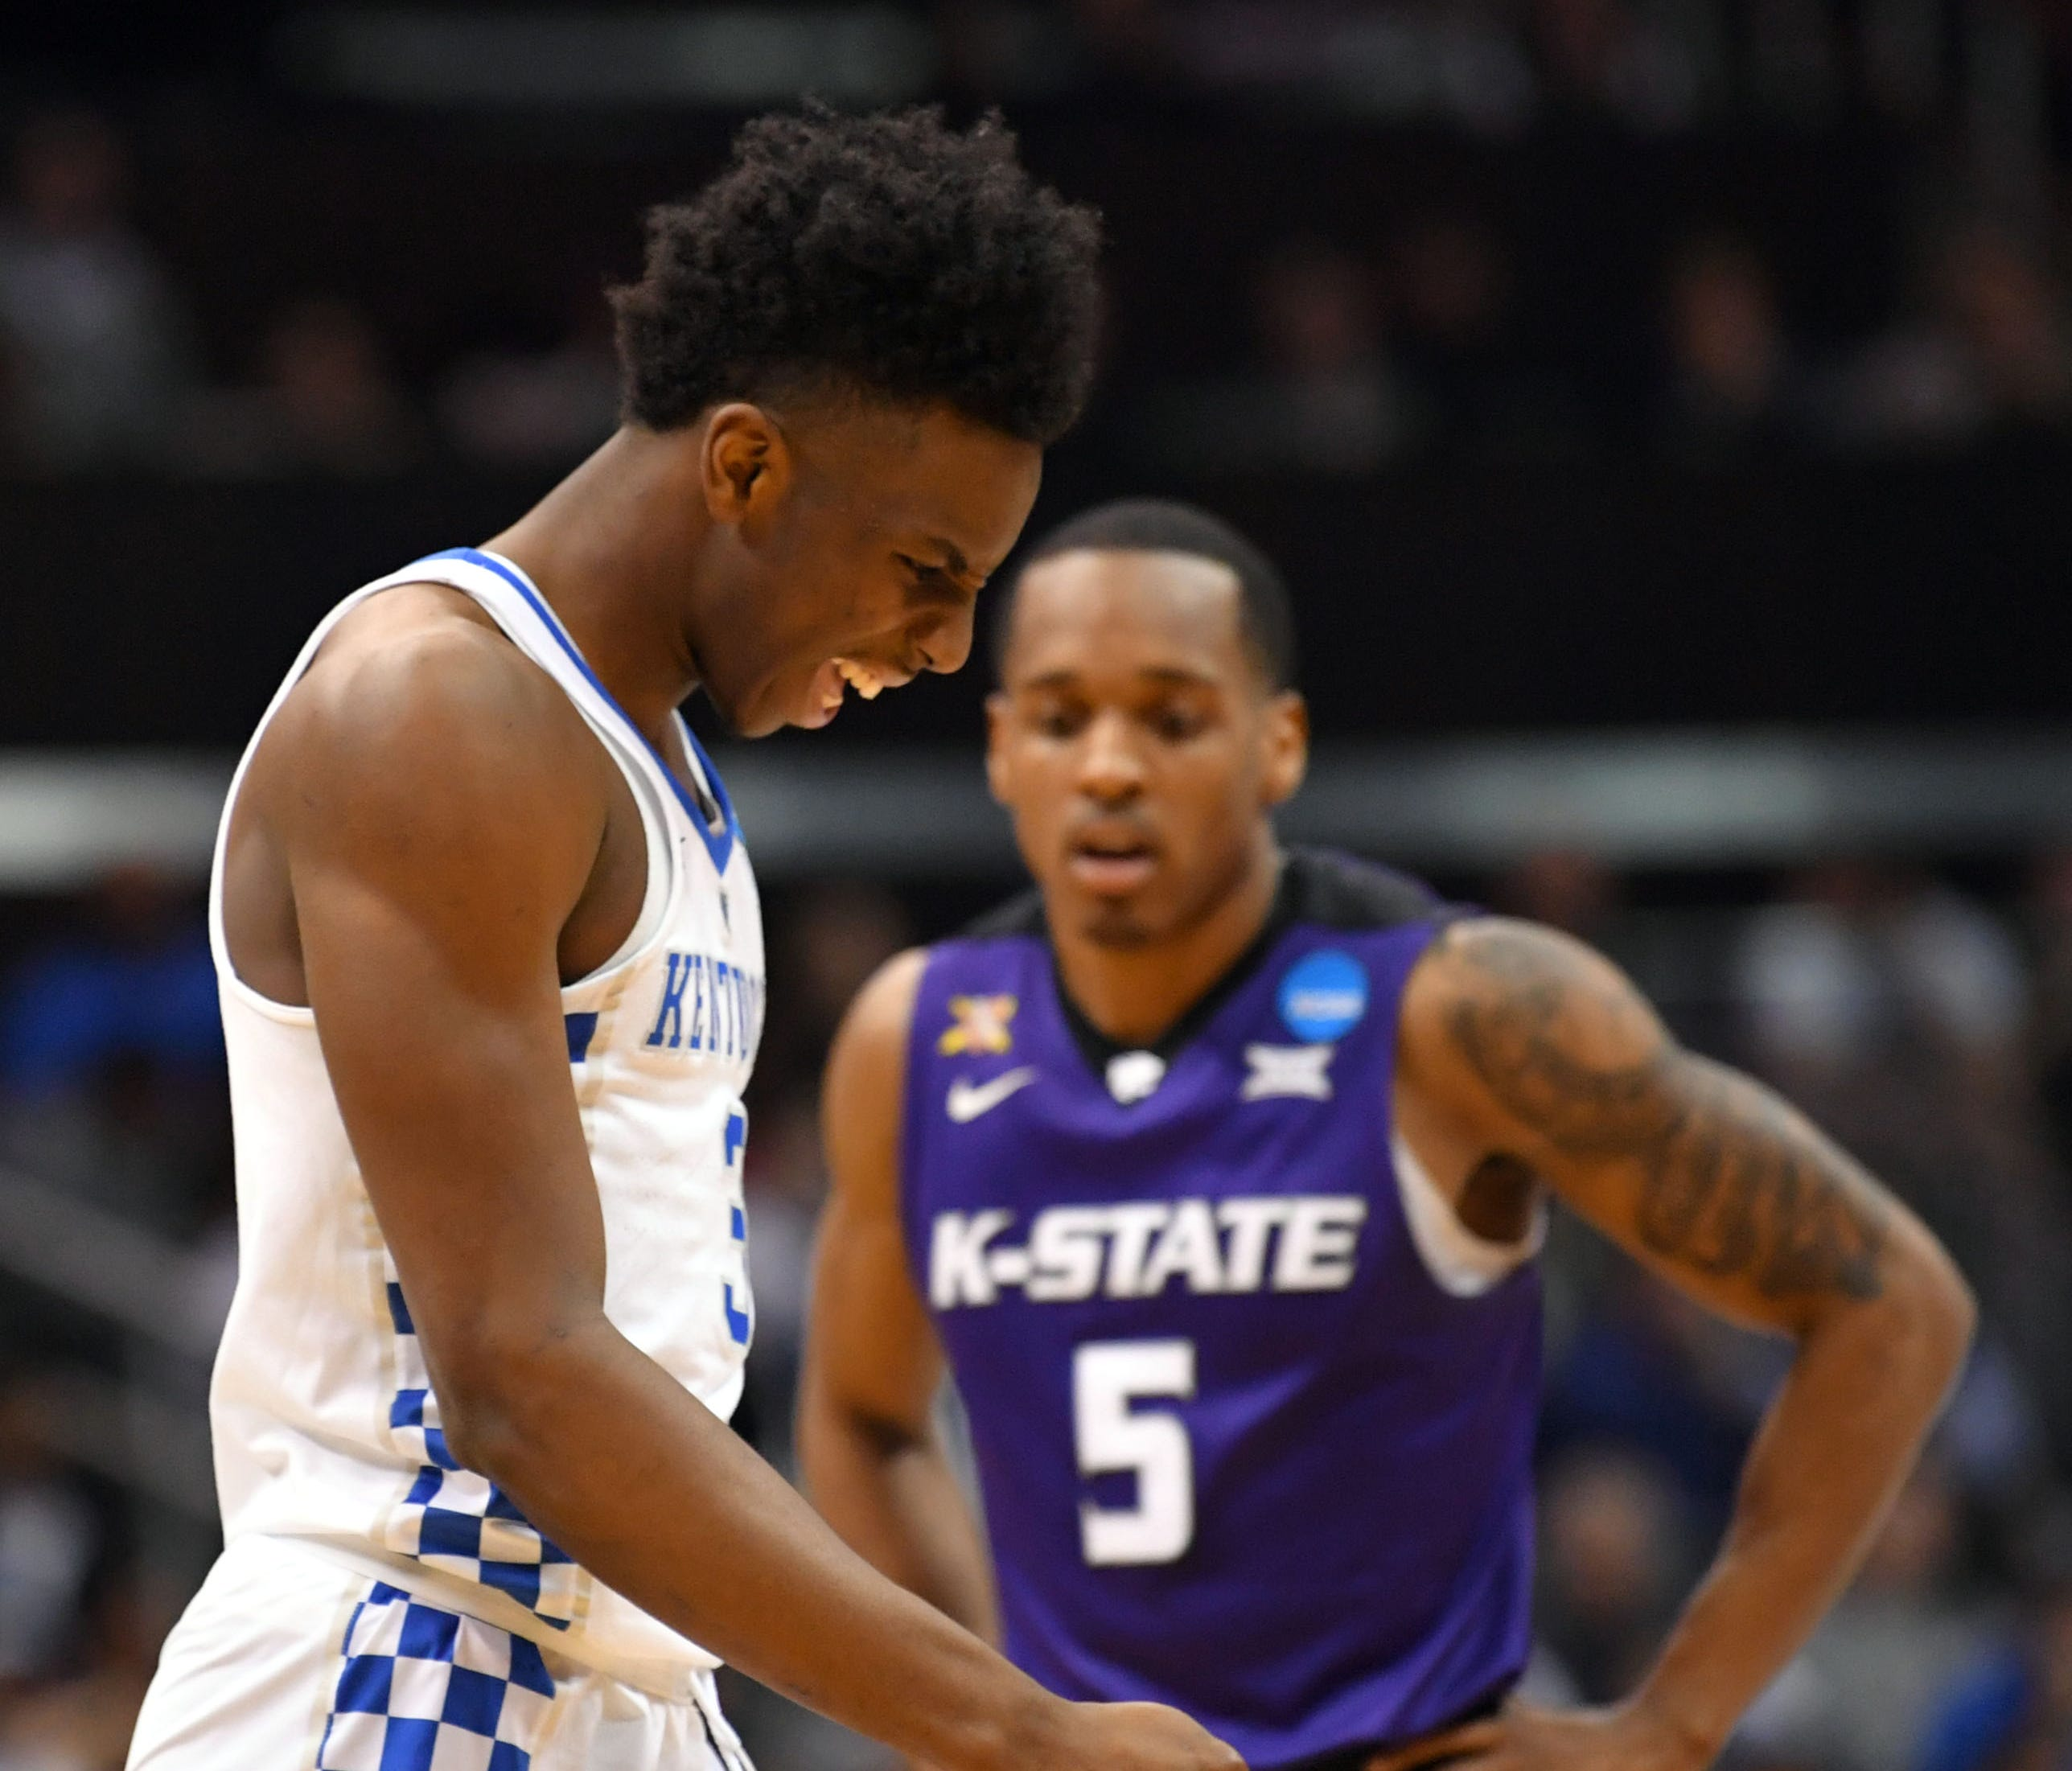 Kentucky Wildcats guard Hamidou Diallo had just two points in Thursday's Sweet 16 loss to Kansas State.